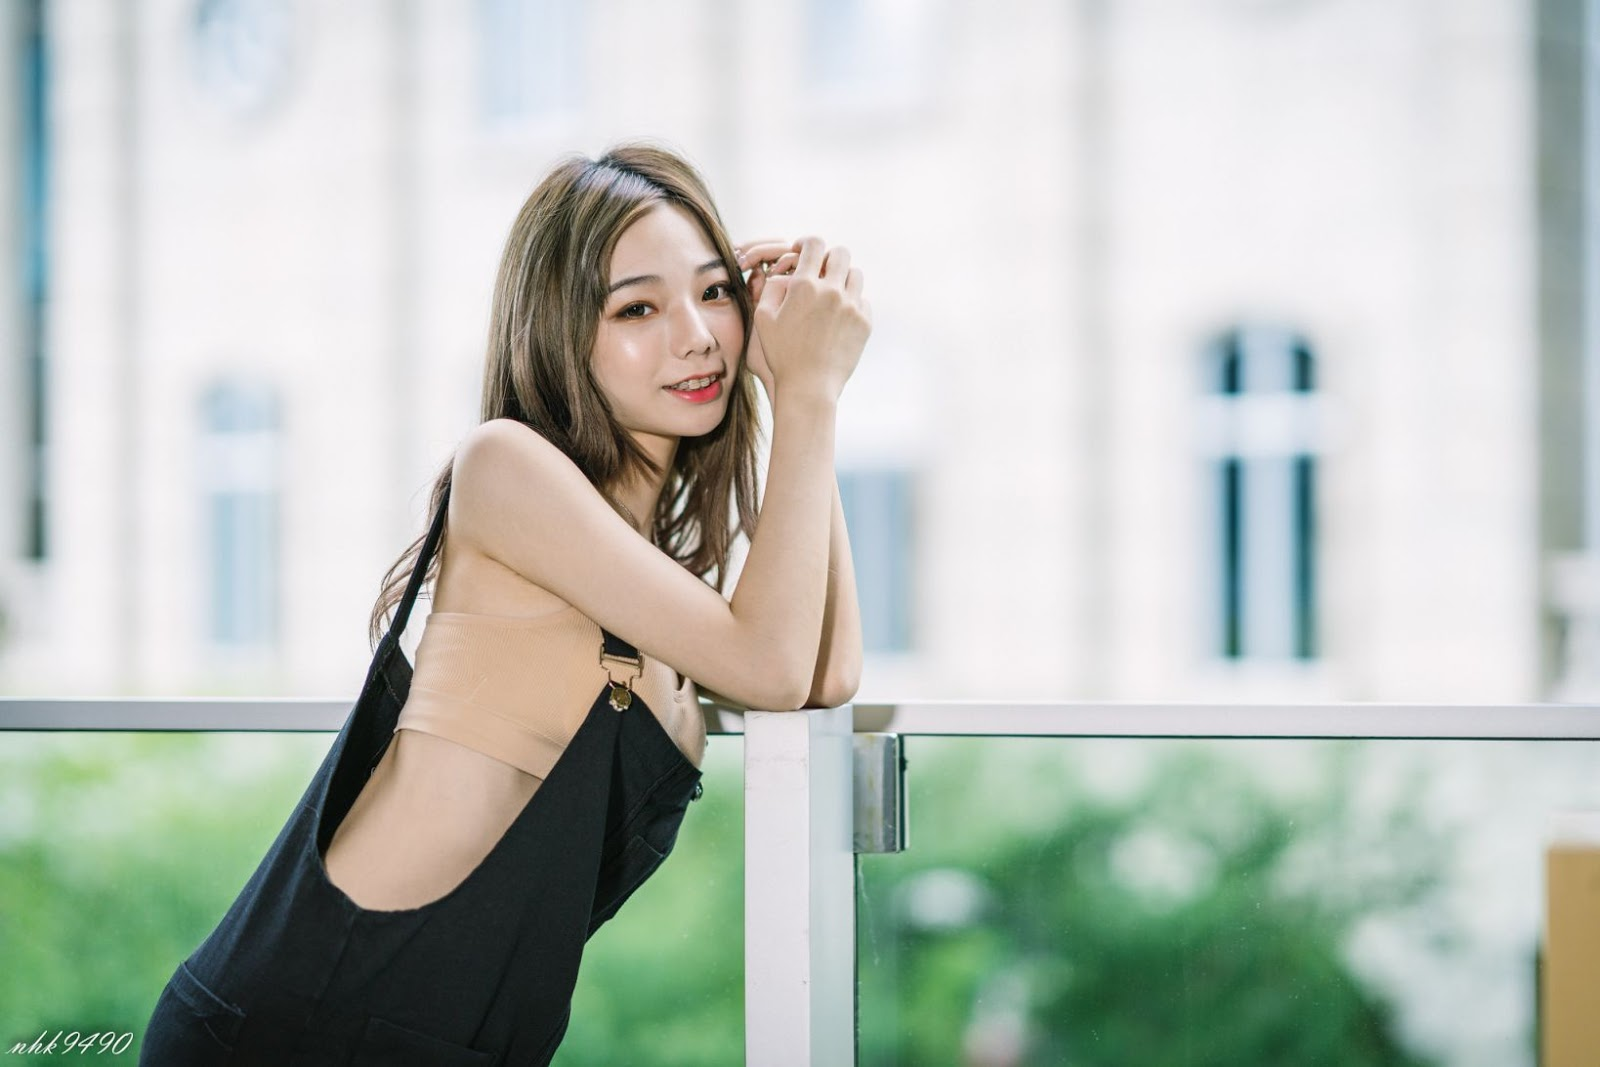 Jiu Jiu - 啾啾 - 2019.09.29 - Xinyi Business Circle - TruePic.net